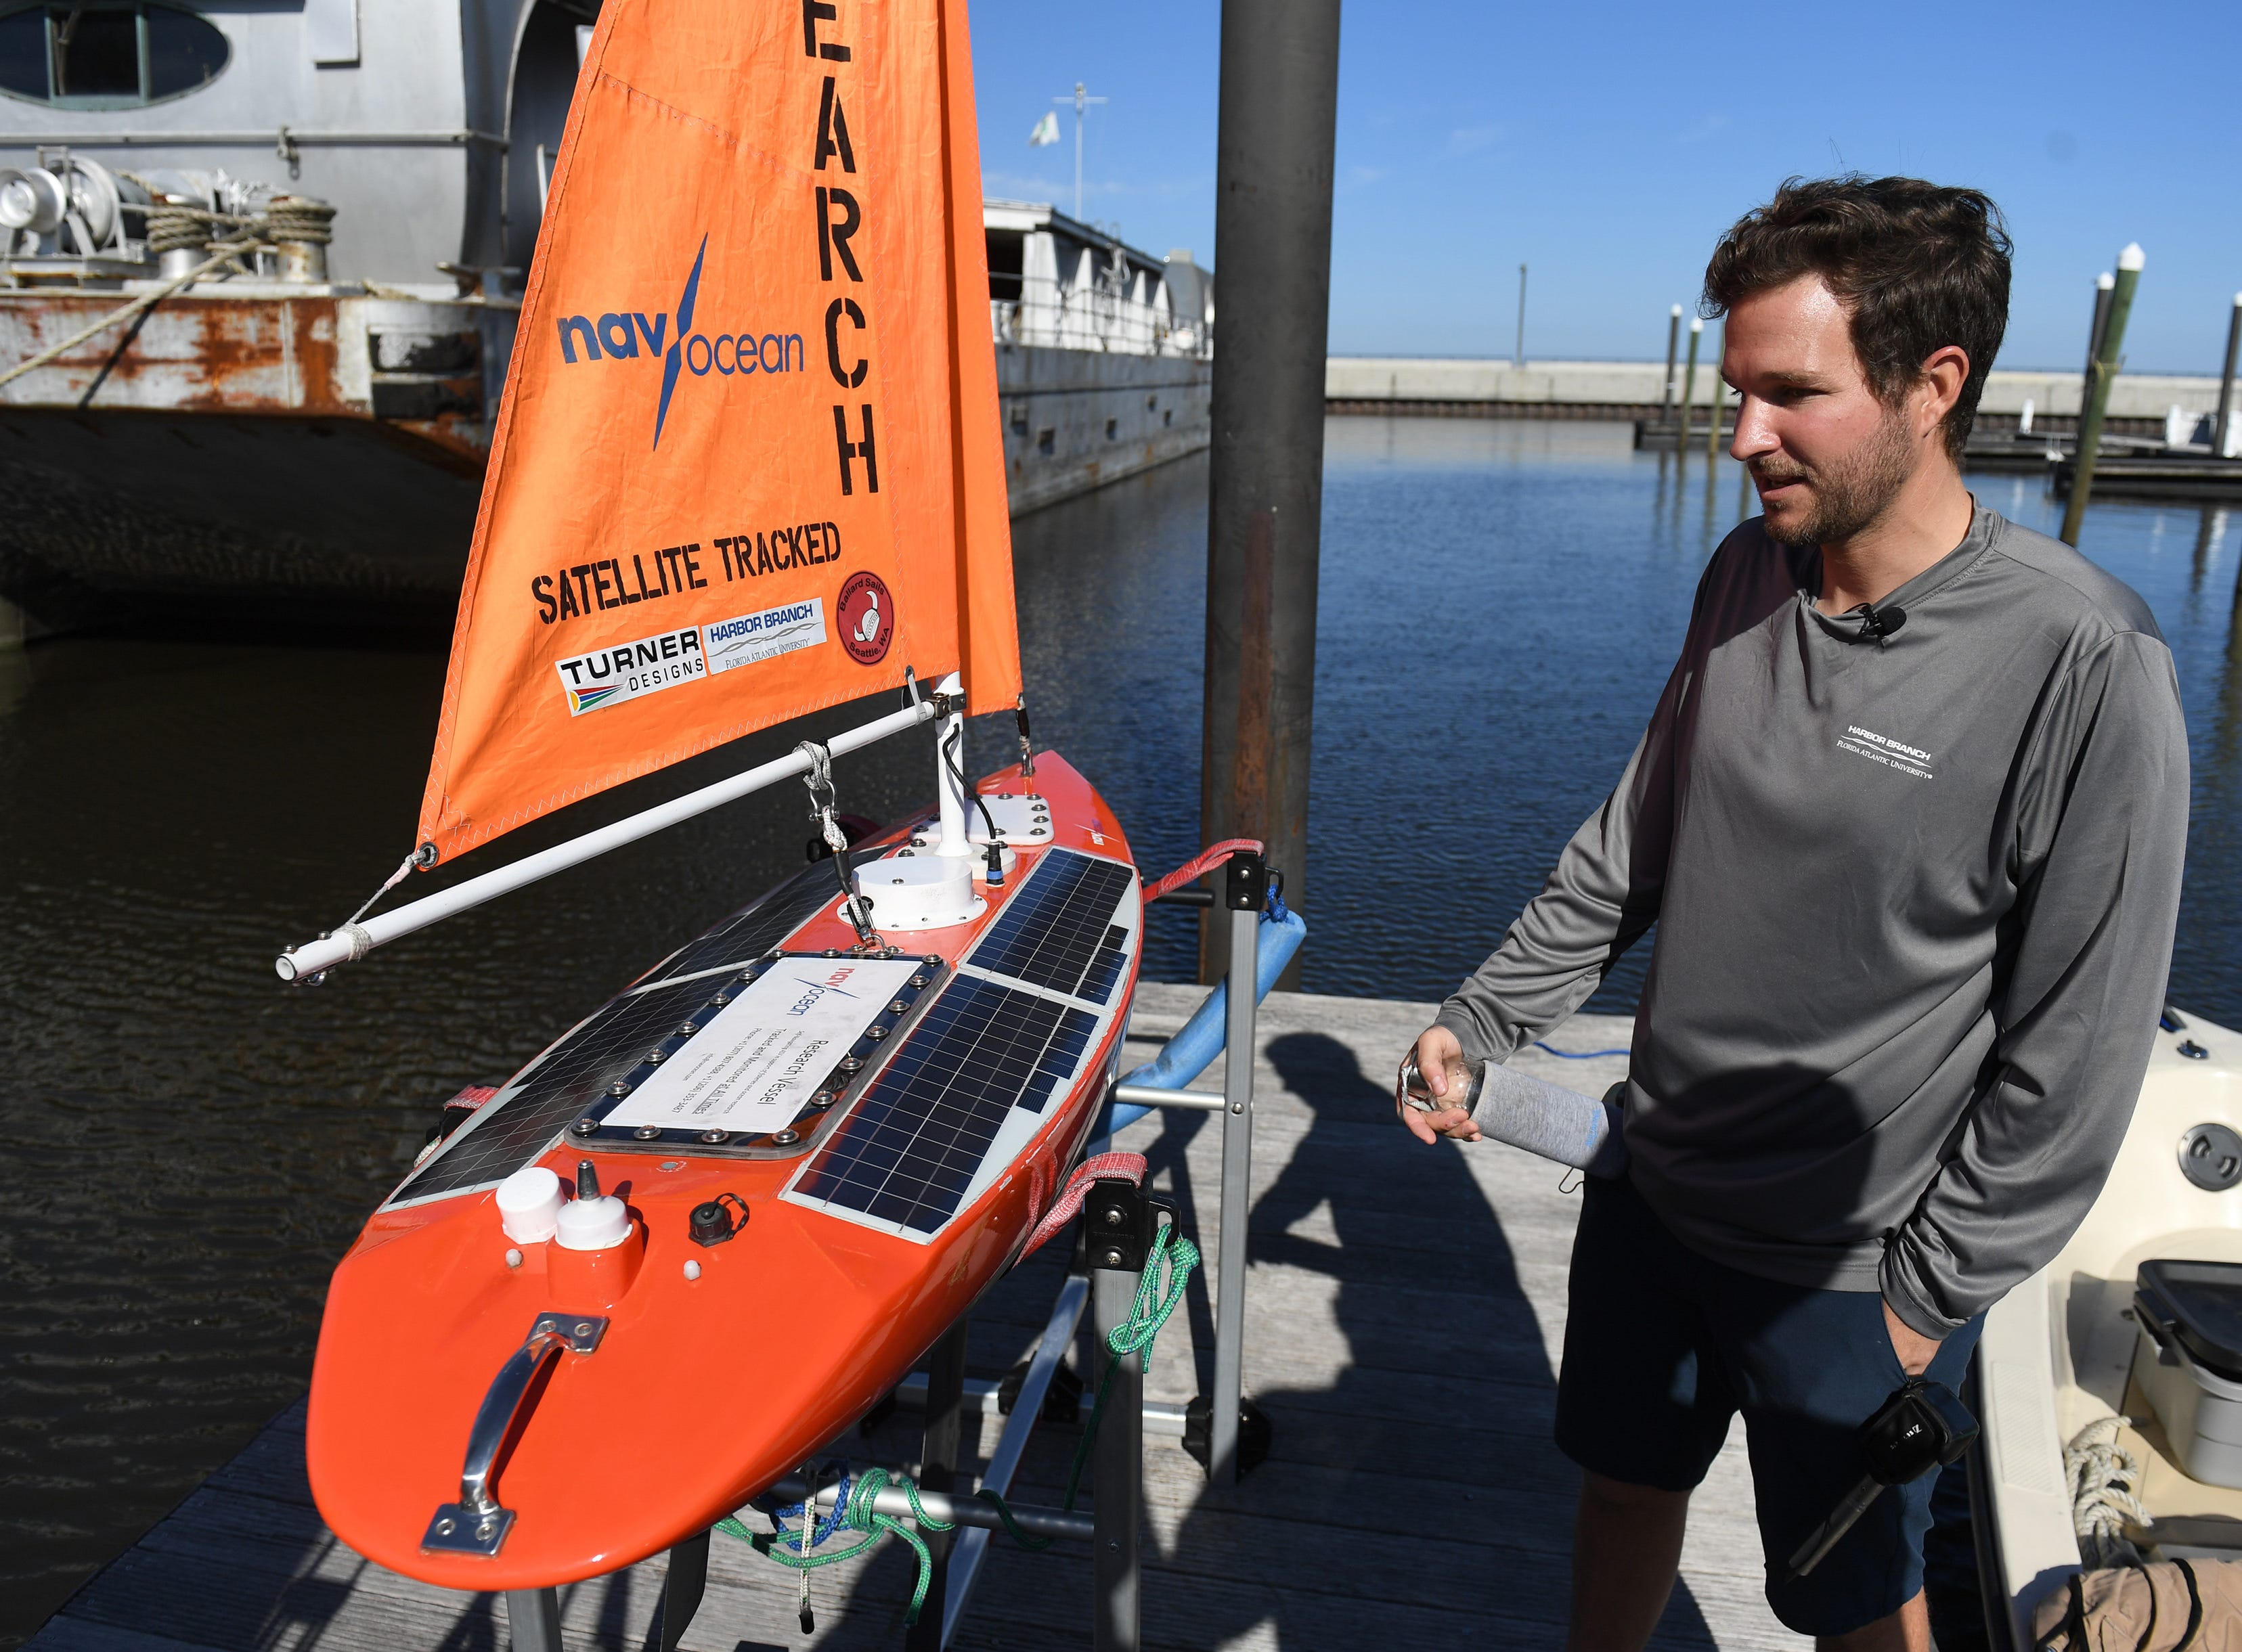 Jordon Beckler assists in launching of the Navocean Nav2 autonomous sailboat from the dock of the Pahokee Marina into Lake Okeechobee on Tuesday, Feb. 5, 2019, for a 10-day to two-week mission for search for and track blue-green algae blooms.